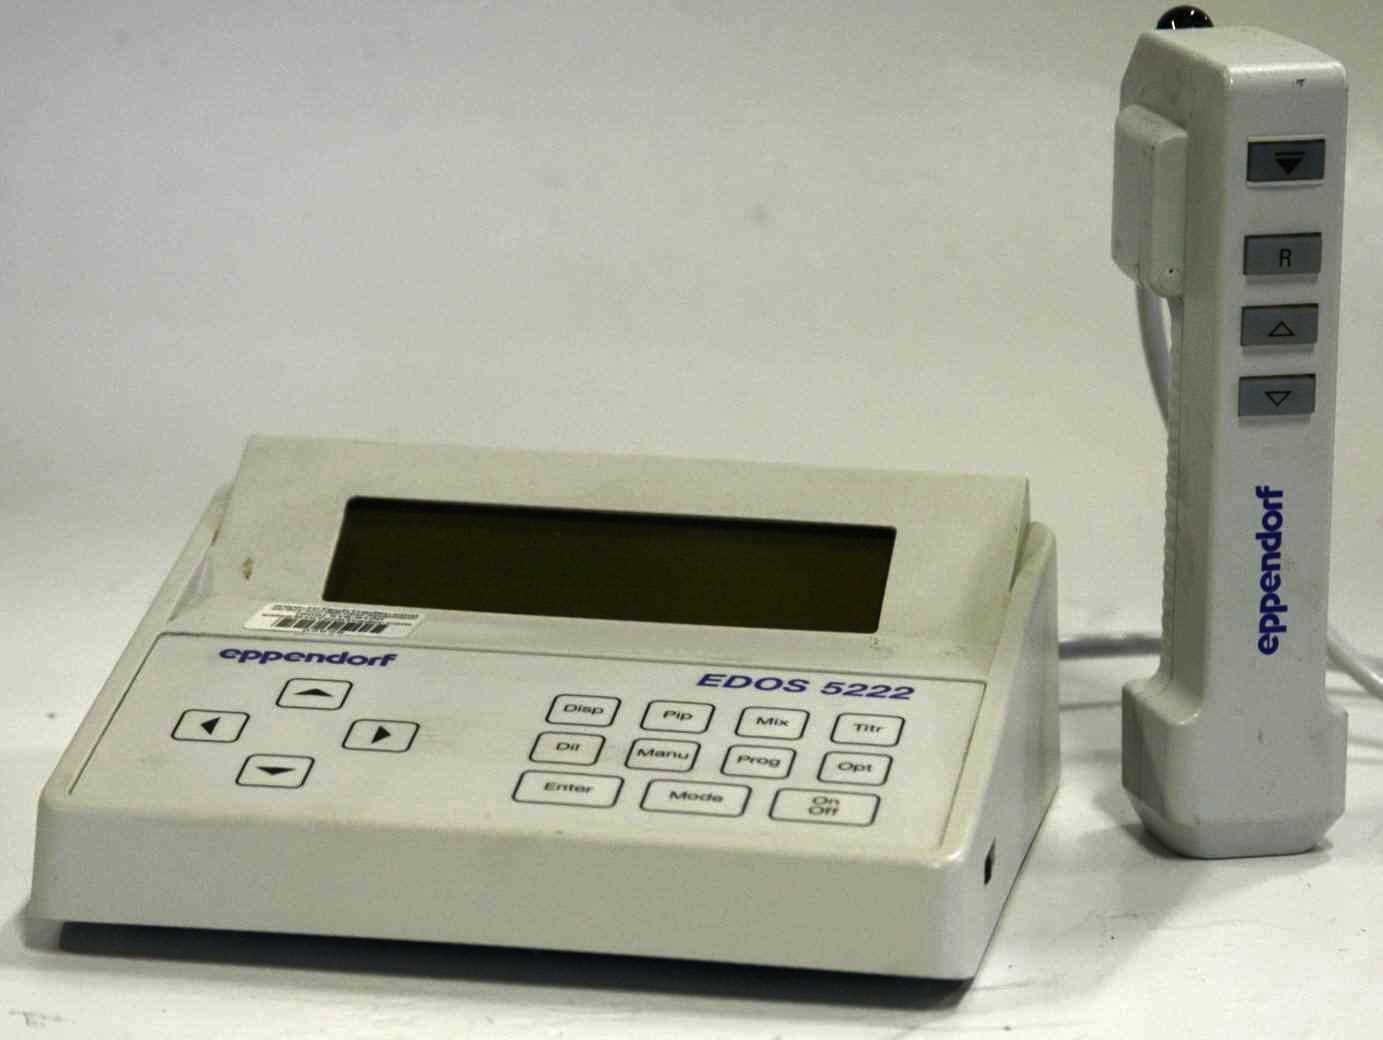 Eppendorf EDOS-5222 Programmable Dispensing System